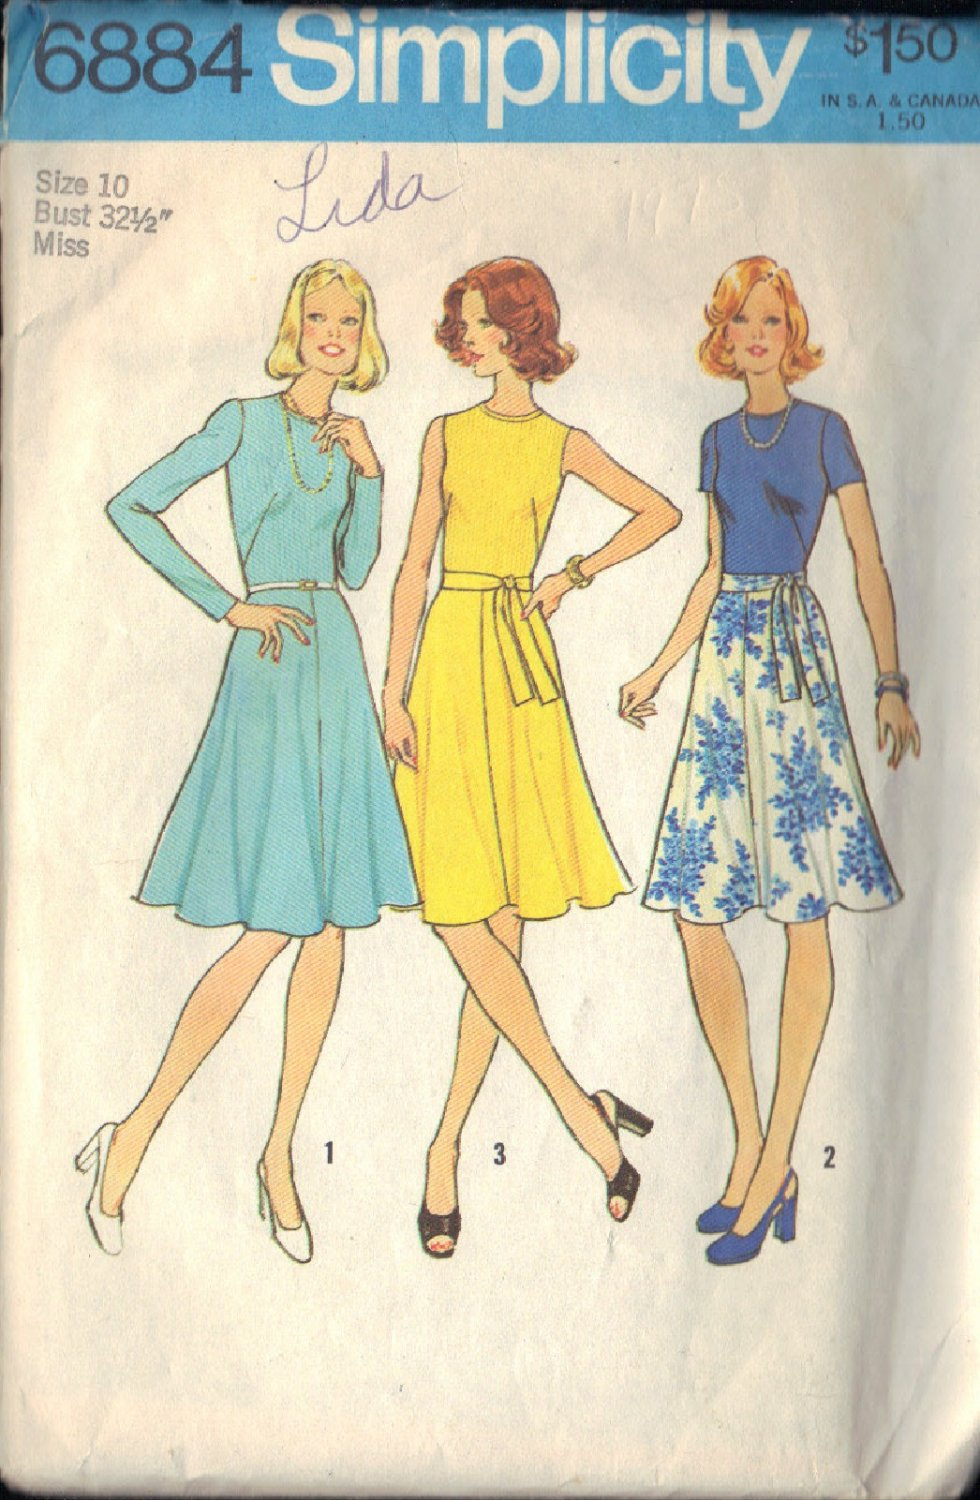 SIMPLICITY PATTERN 6884 SIZE 10 DRESS IN 3 VARIATION from 1966